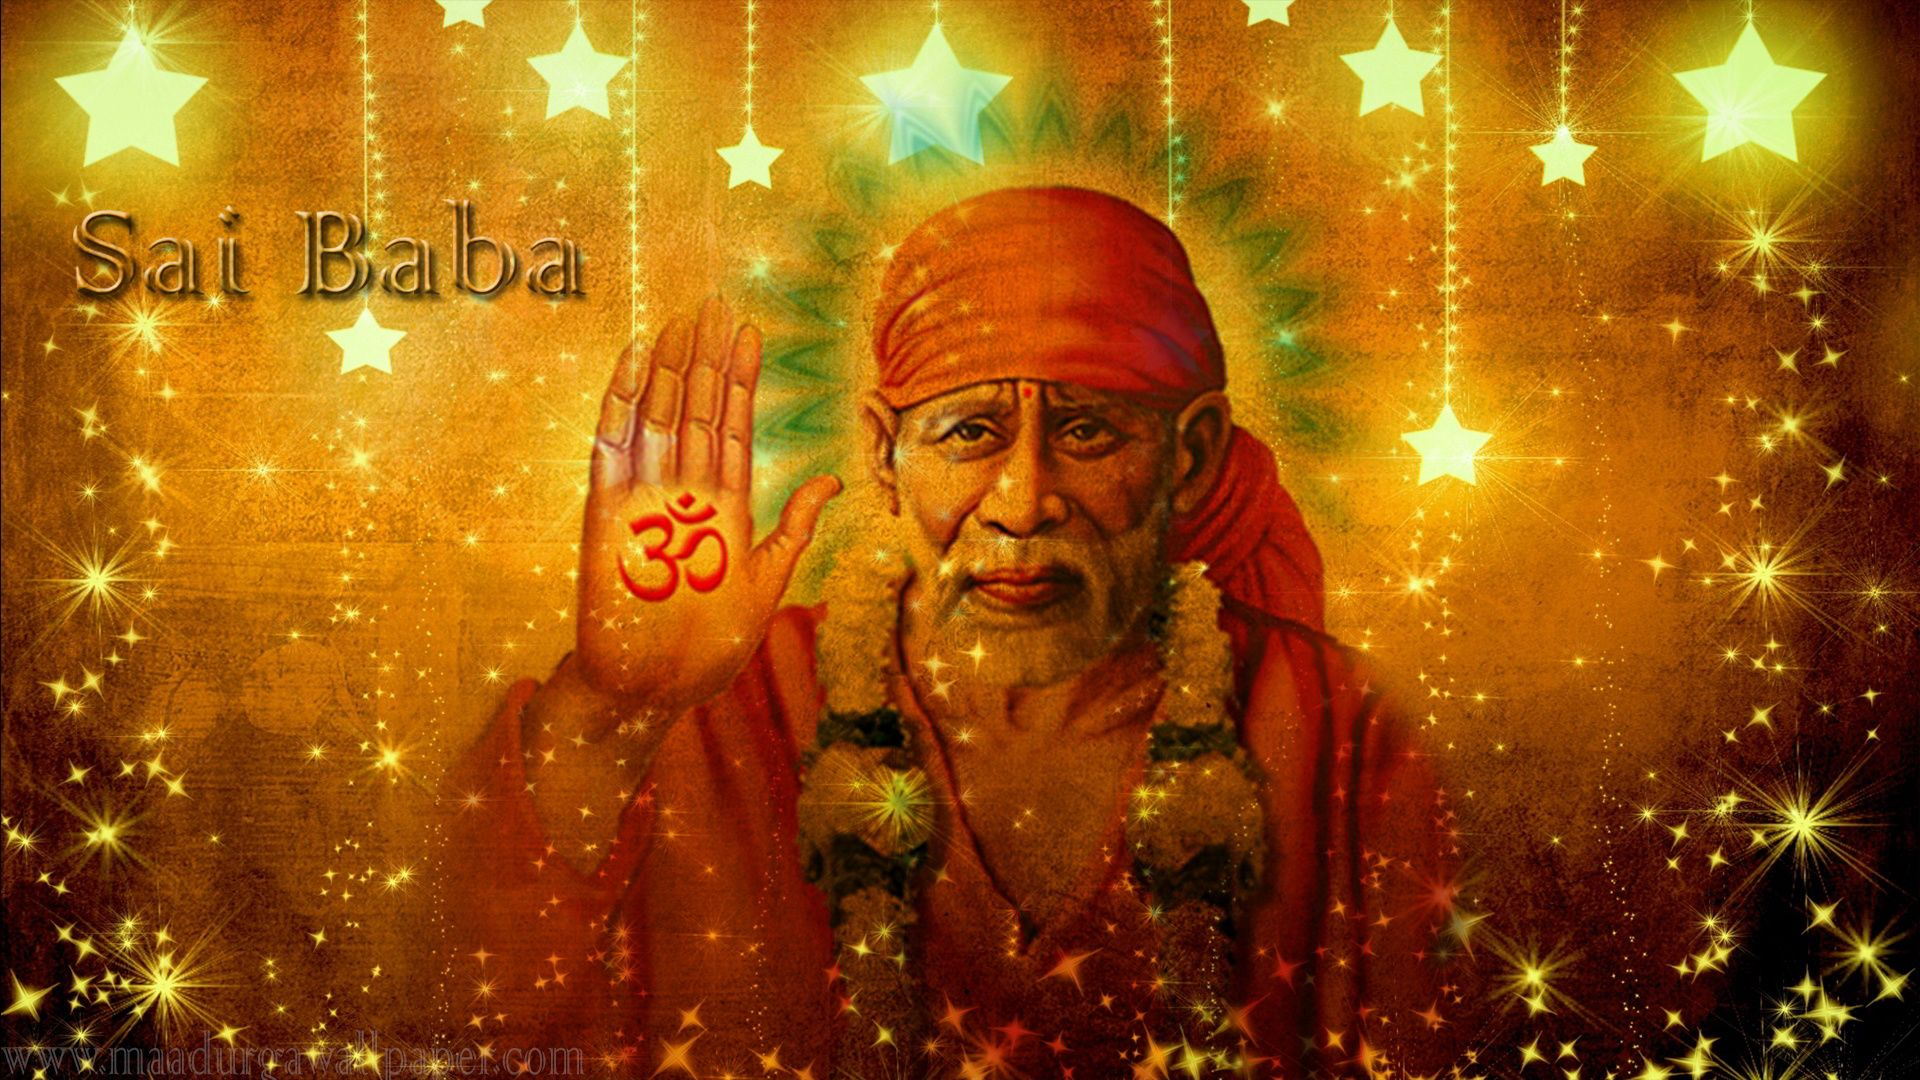 Hd wallpaper sai baba - Sai Baba Wallpaper Sai Baba Images Shirdi Sai Baba Hd Photo